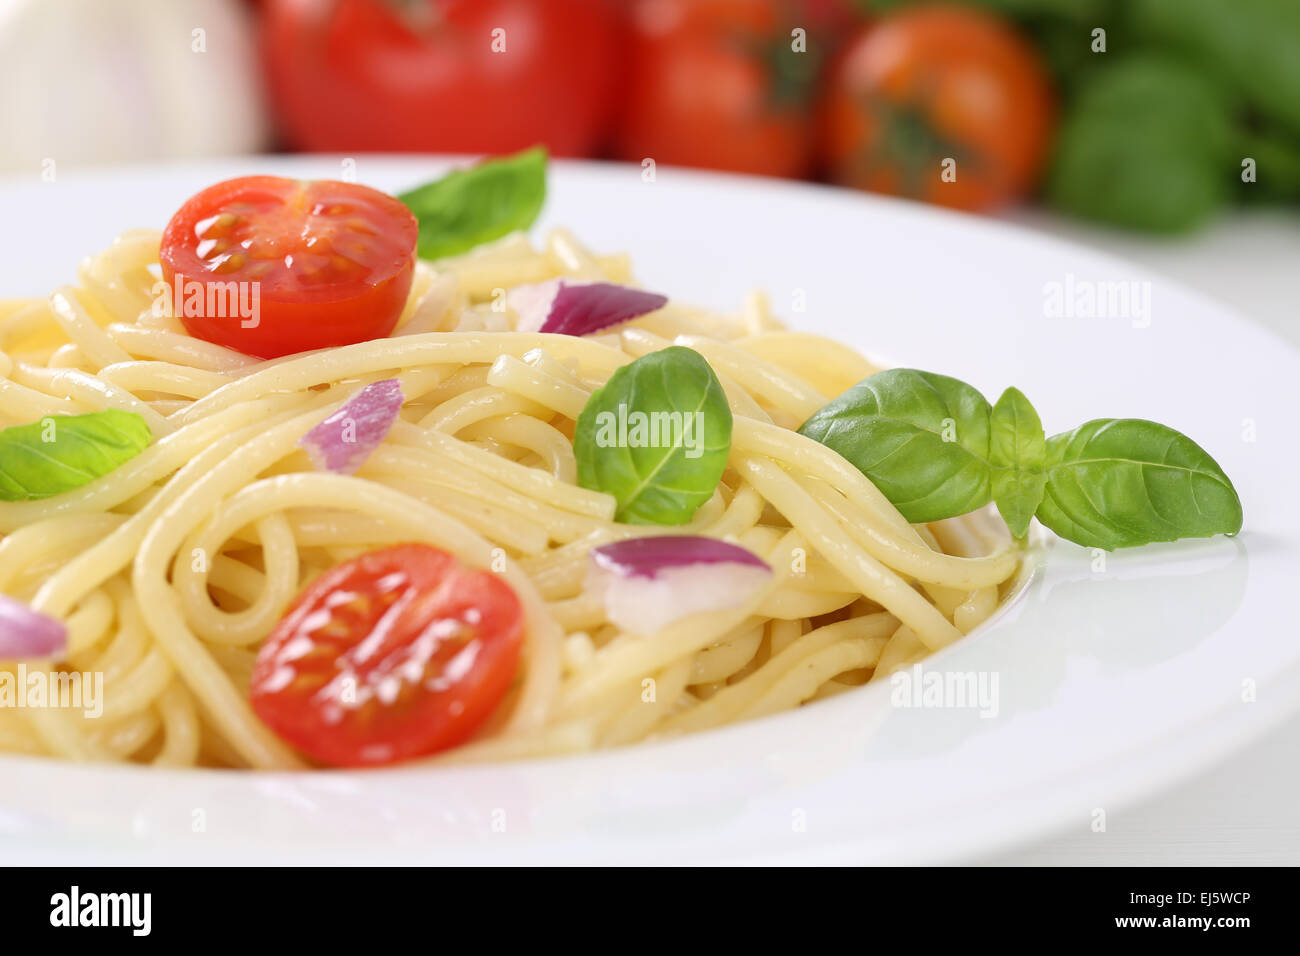 Spaghetti noodles pasta food meal with tomatoes and basil on plate - Stock Image